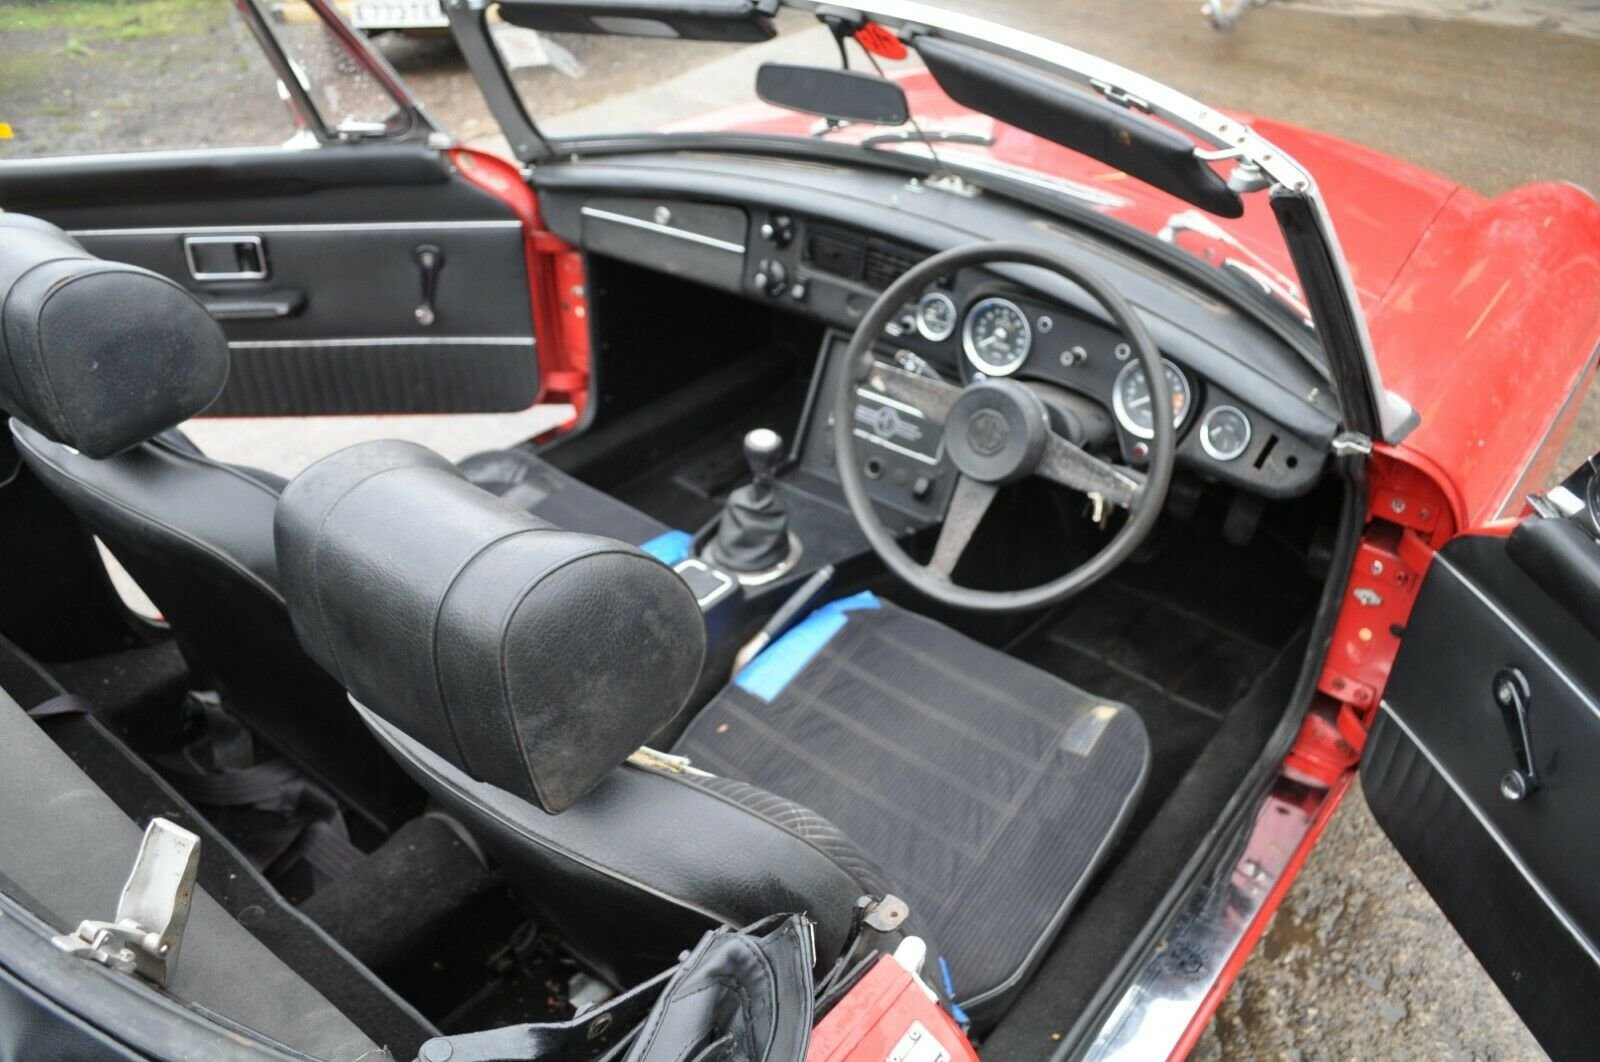 1975 MG MGB ROADSTER IN RED TAX EXEMPT GOOD SOLID CLASSIC CA For Sale (picture 5 of 6)